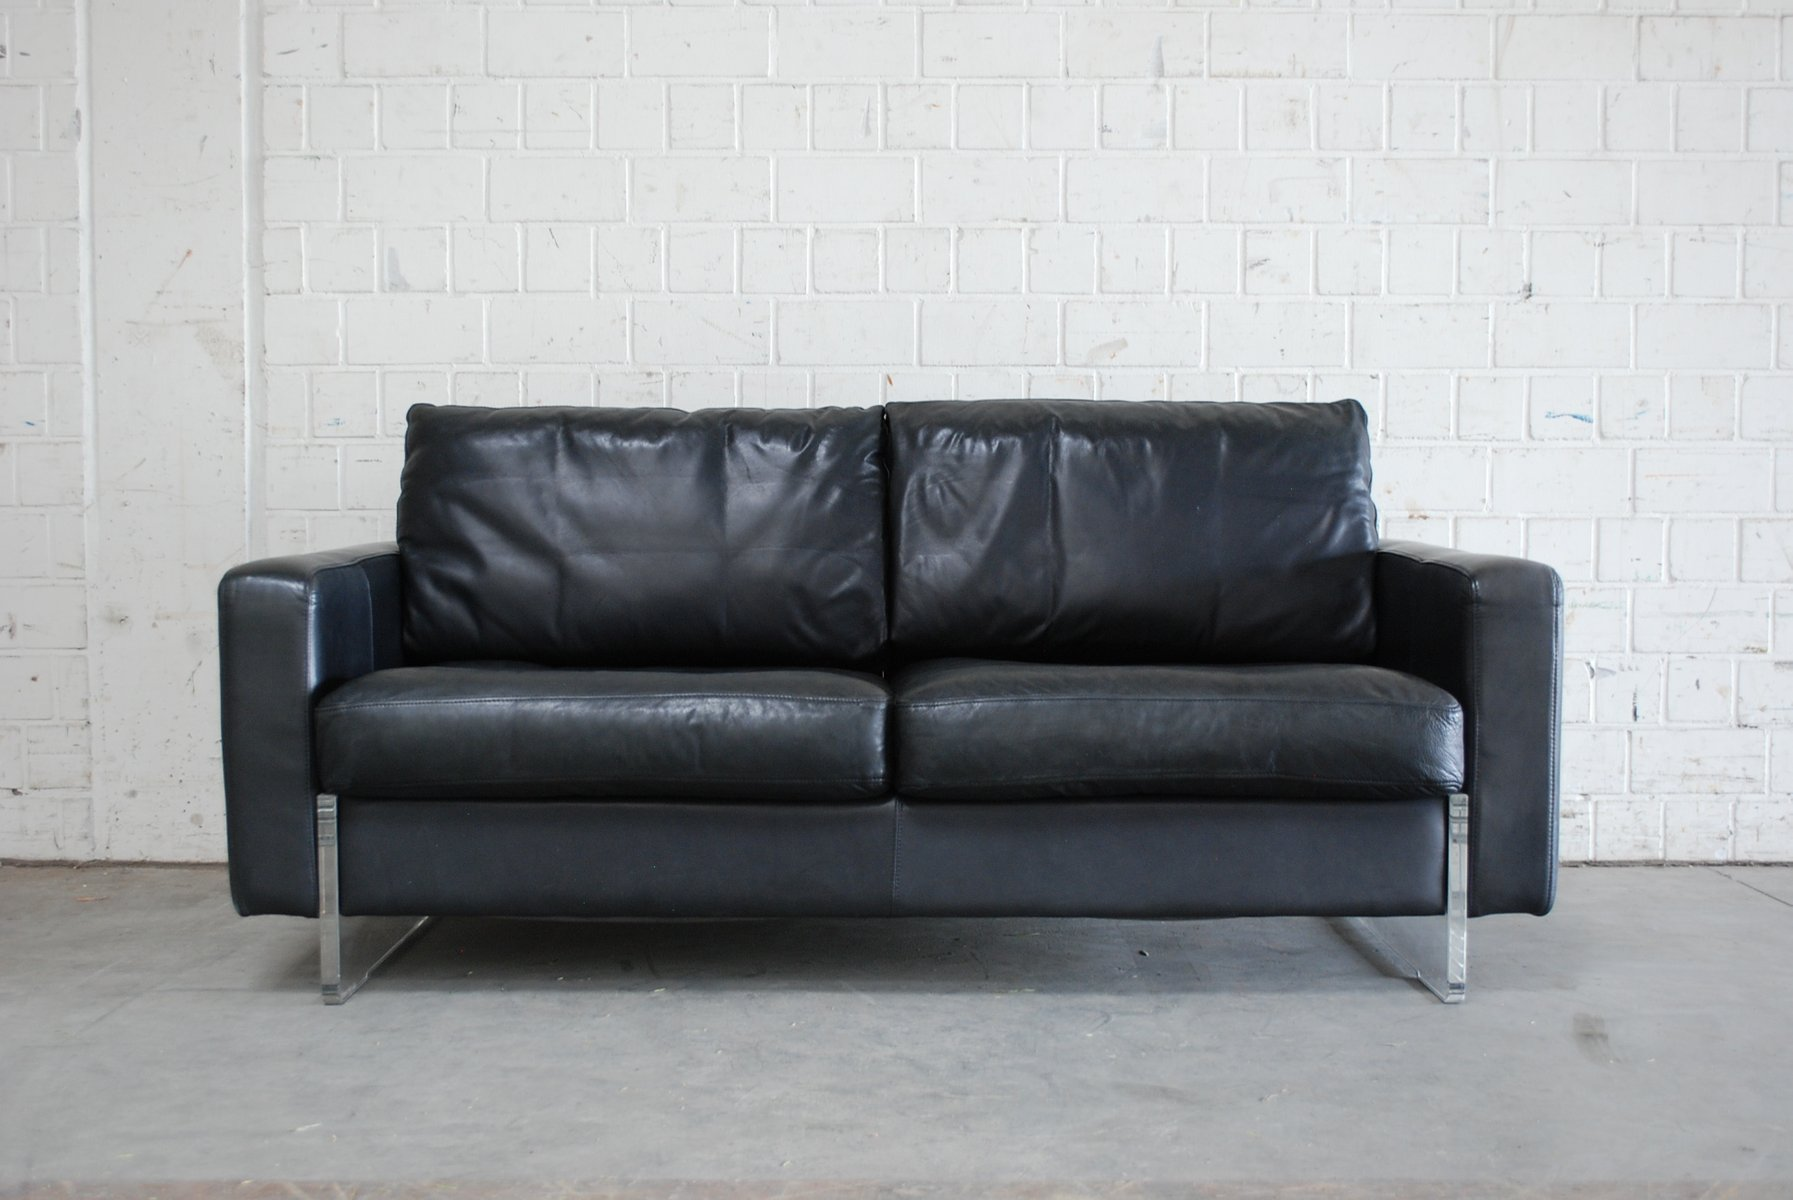 Beautiful Vintage Black Leather Sofa From Lavalina For Sale At Pamono